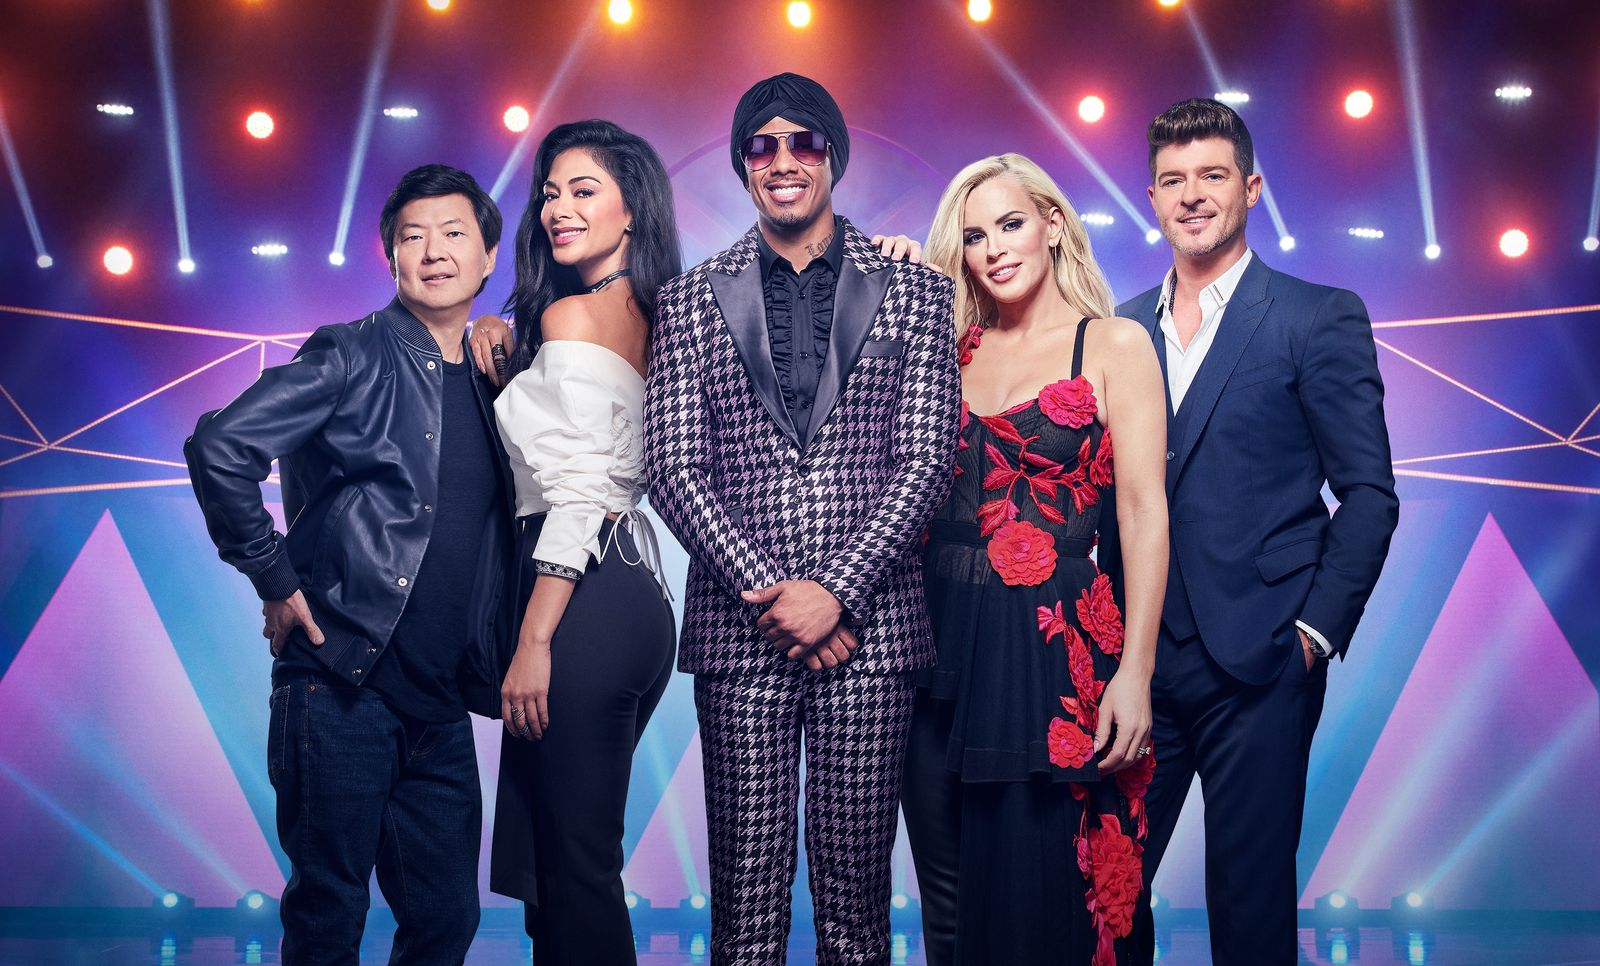 """Ken Jeong, Nicole Scherzinger, Nick Cannon, Jenny McCarthy, and Robin Thicke in """"The Masked Singer"""" on June 13, 2018 